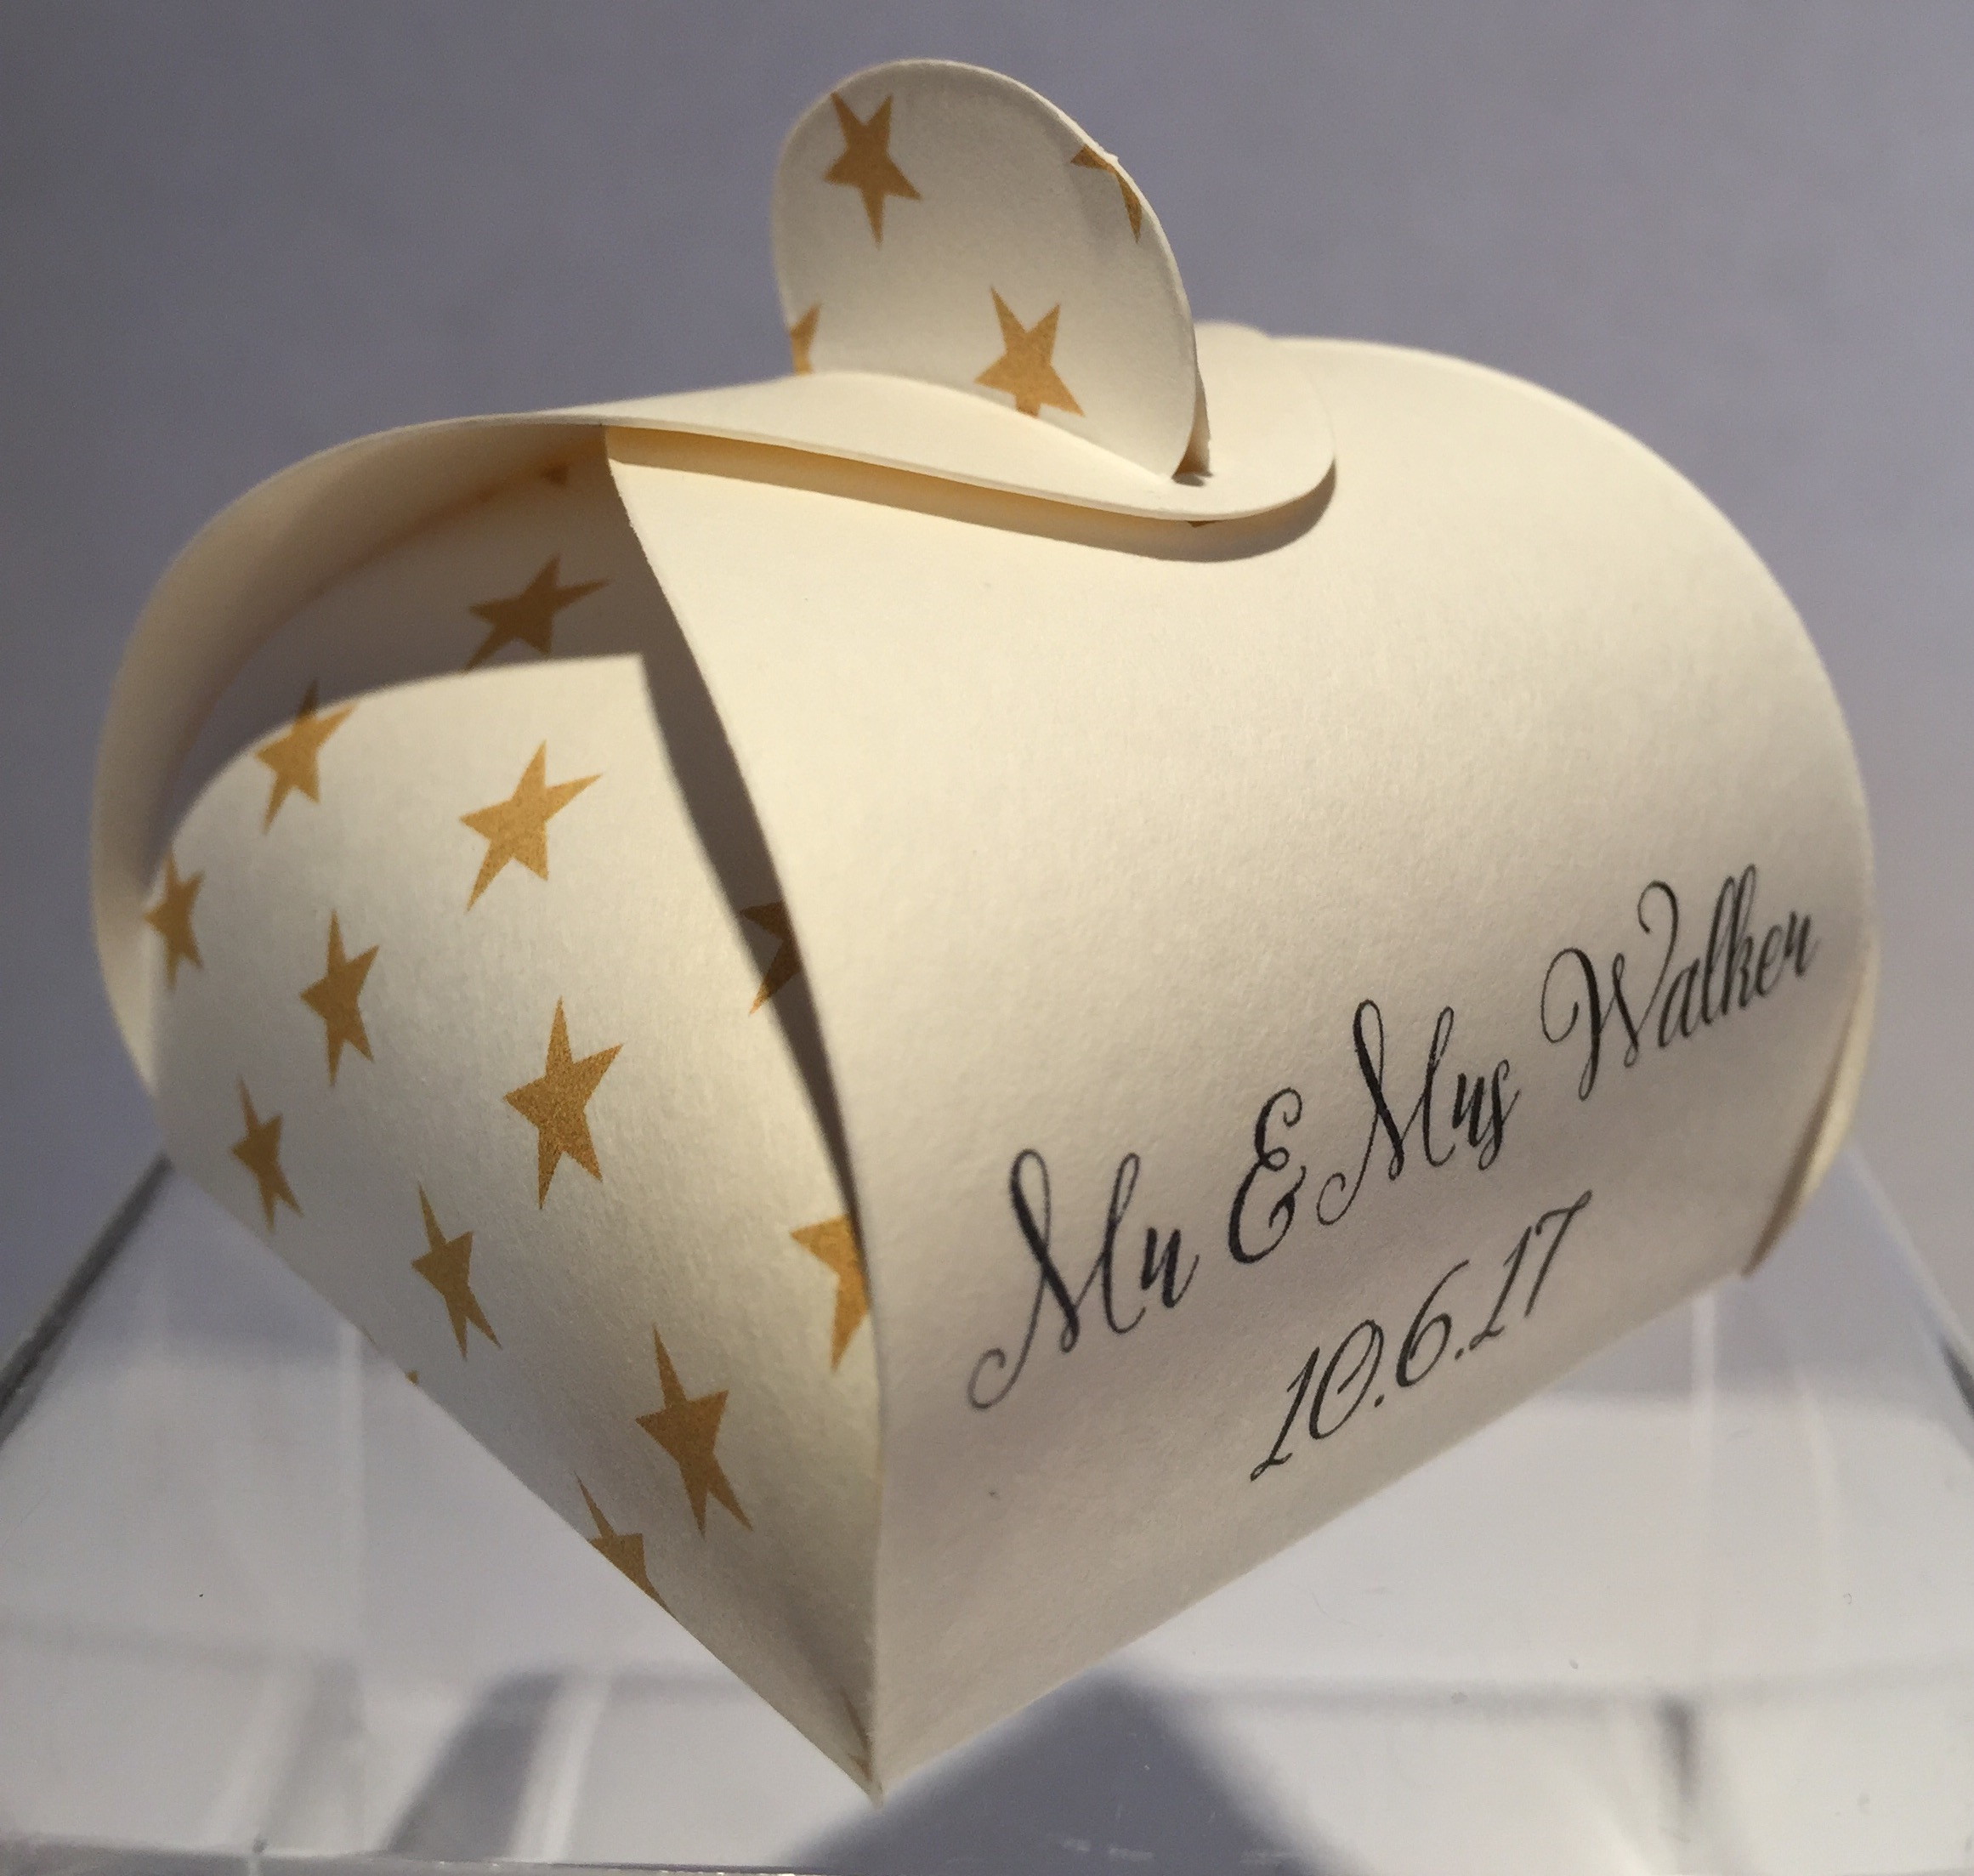 We Tied the Knot - Personalised Wedding Favours - Highland Favours